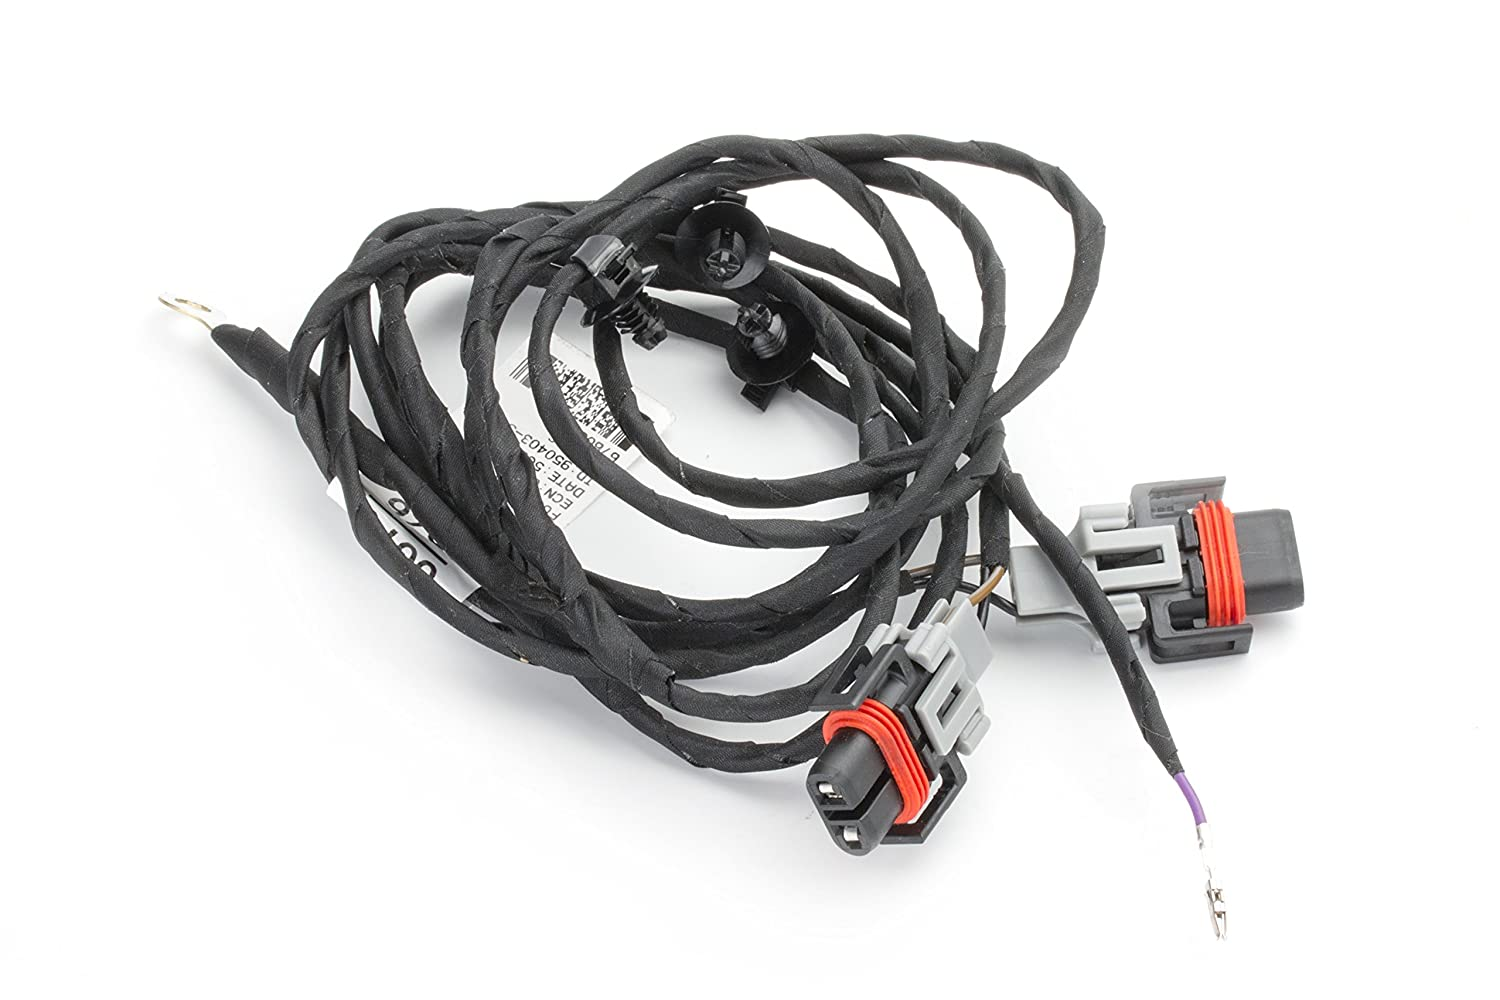 Amazon.com: GM Accessories 96950676 Front Fog Light and Front Object Sensor Wiring  Harness: Automotive